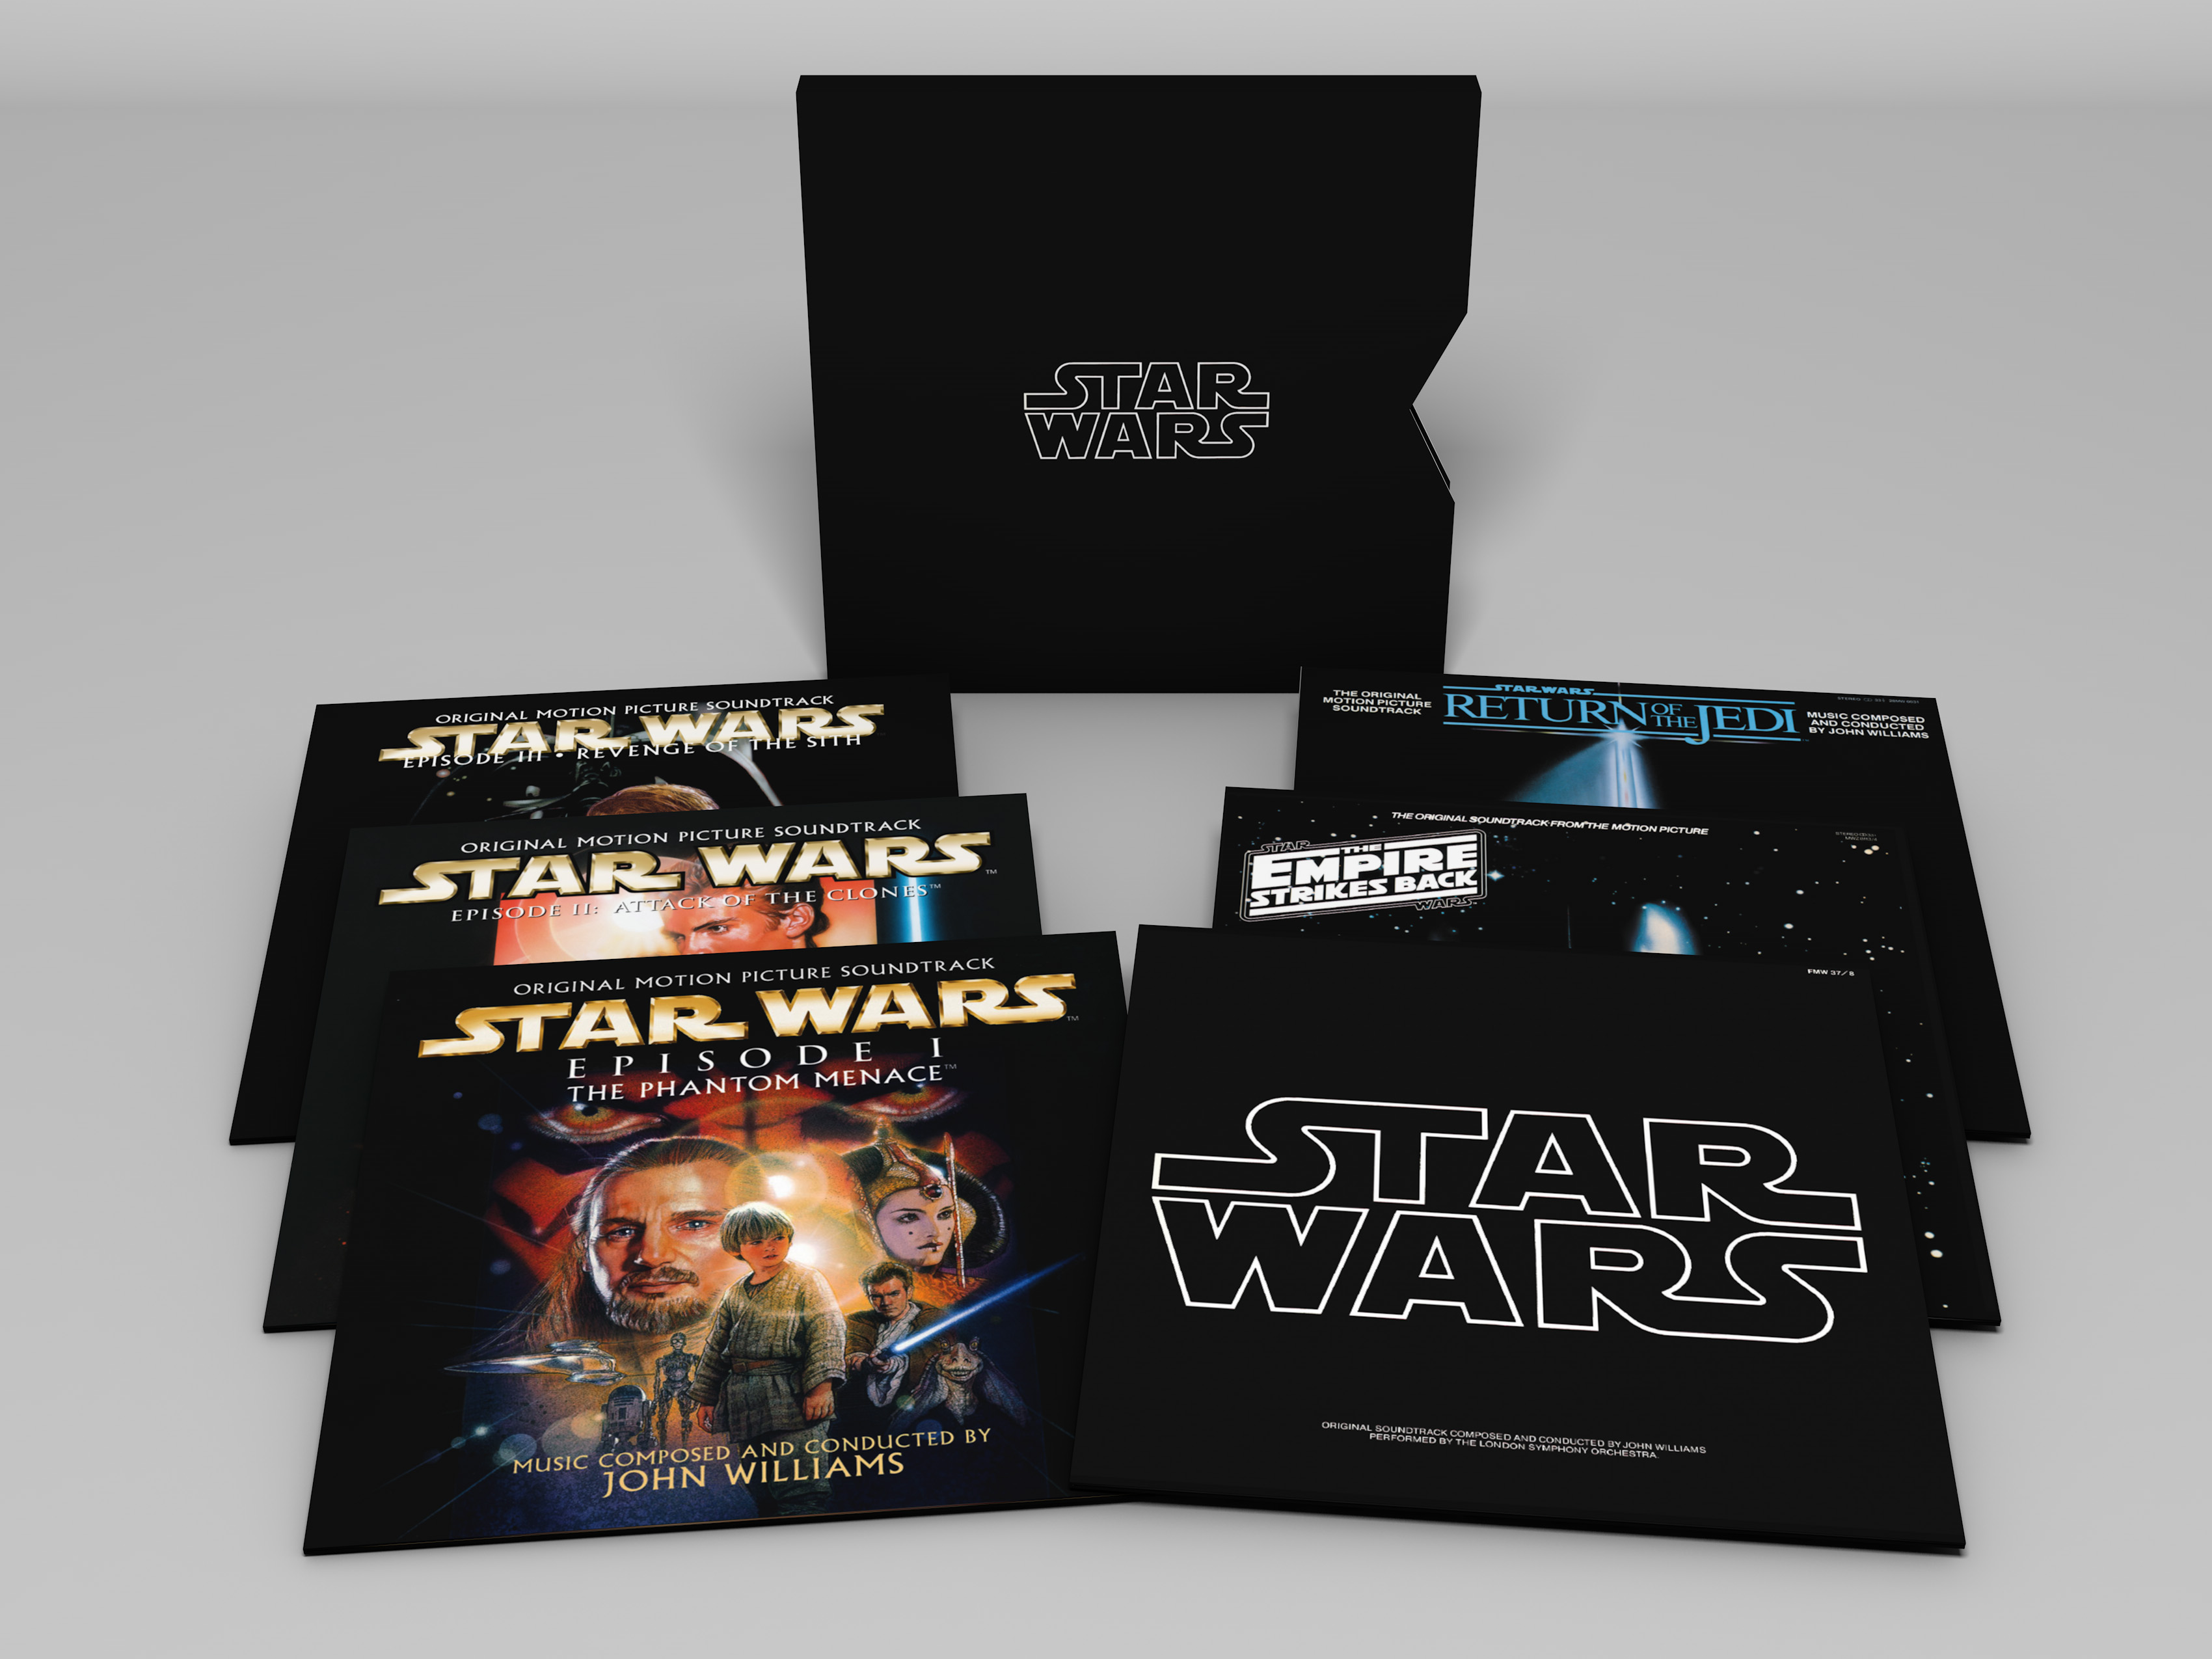 Meet the Star Wars Audio Engineer Masterminds & Vinyl Box Unboxing | Talks at Google Exclusive